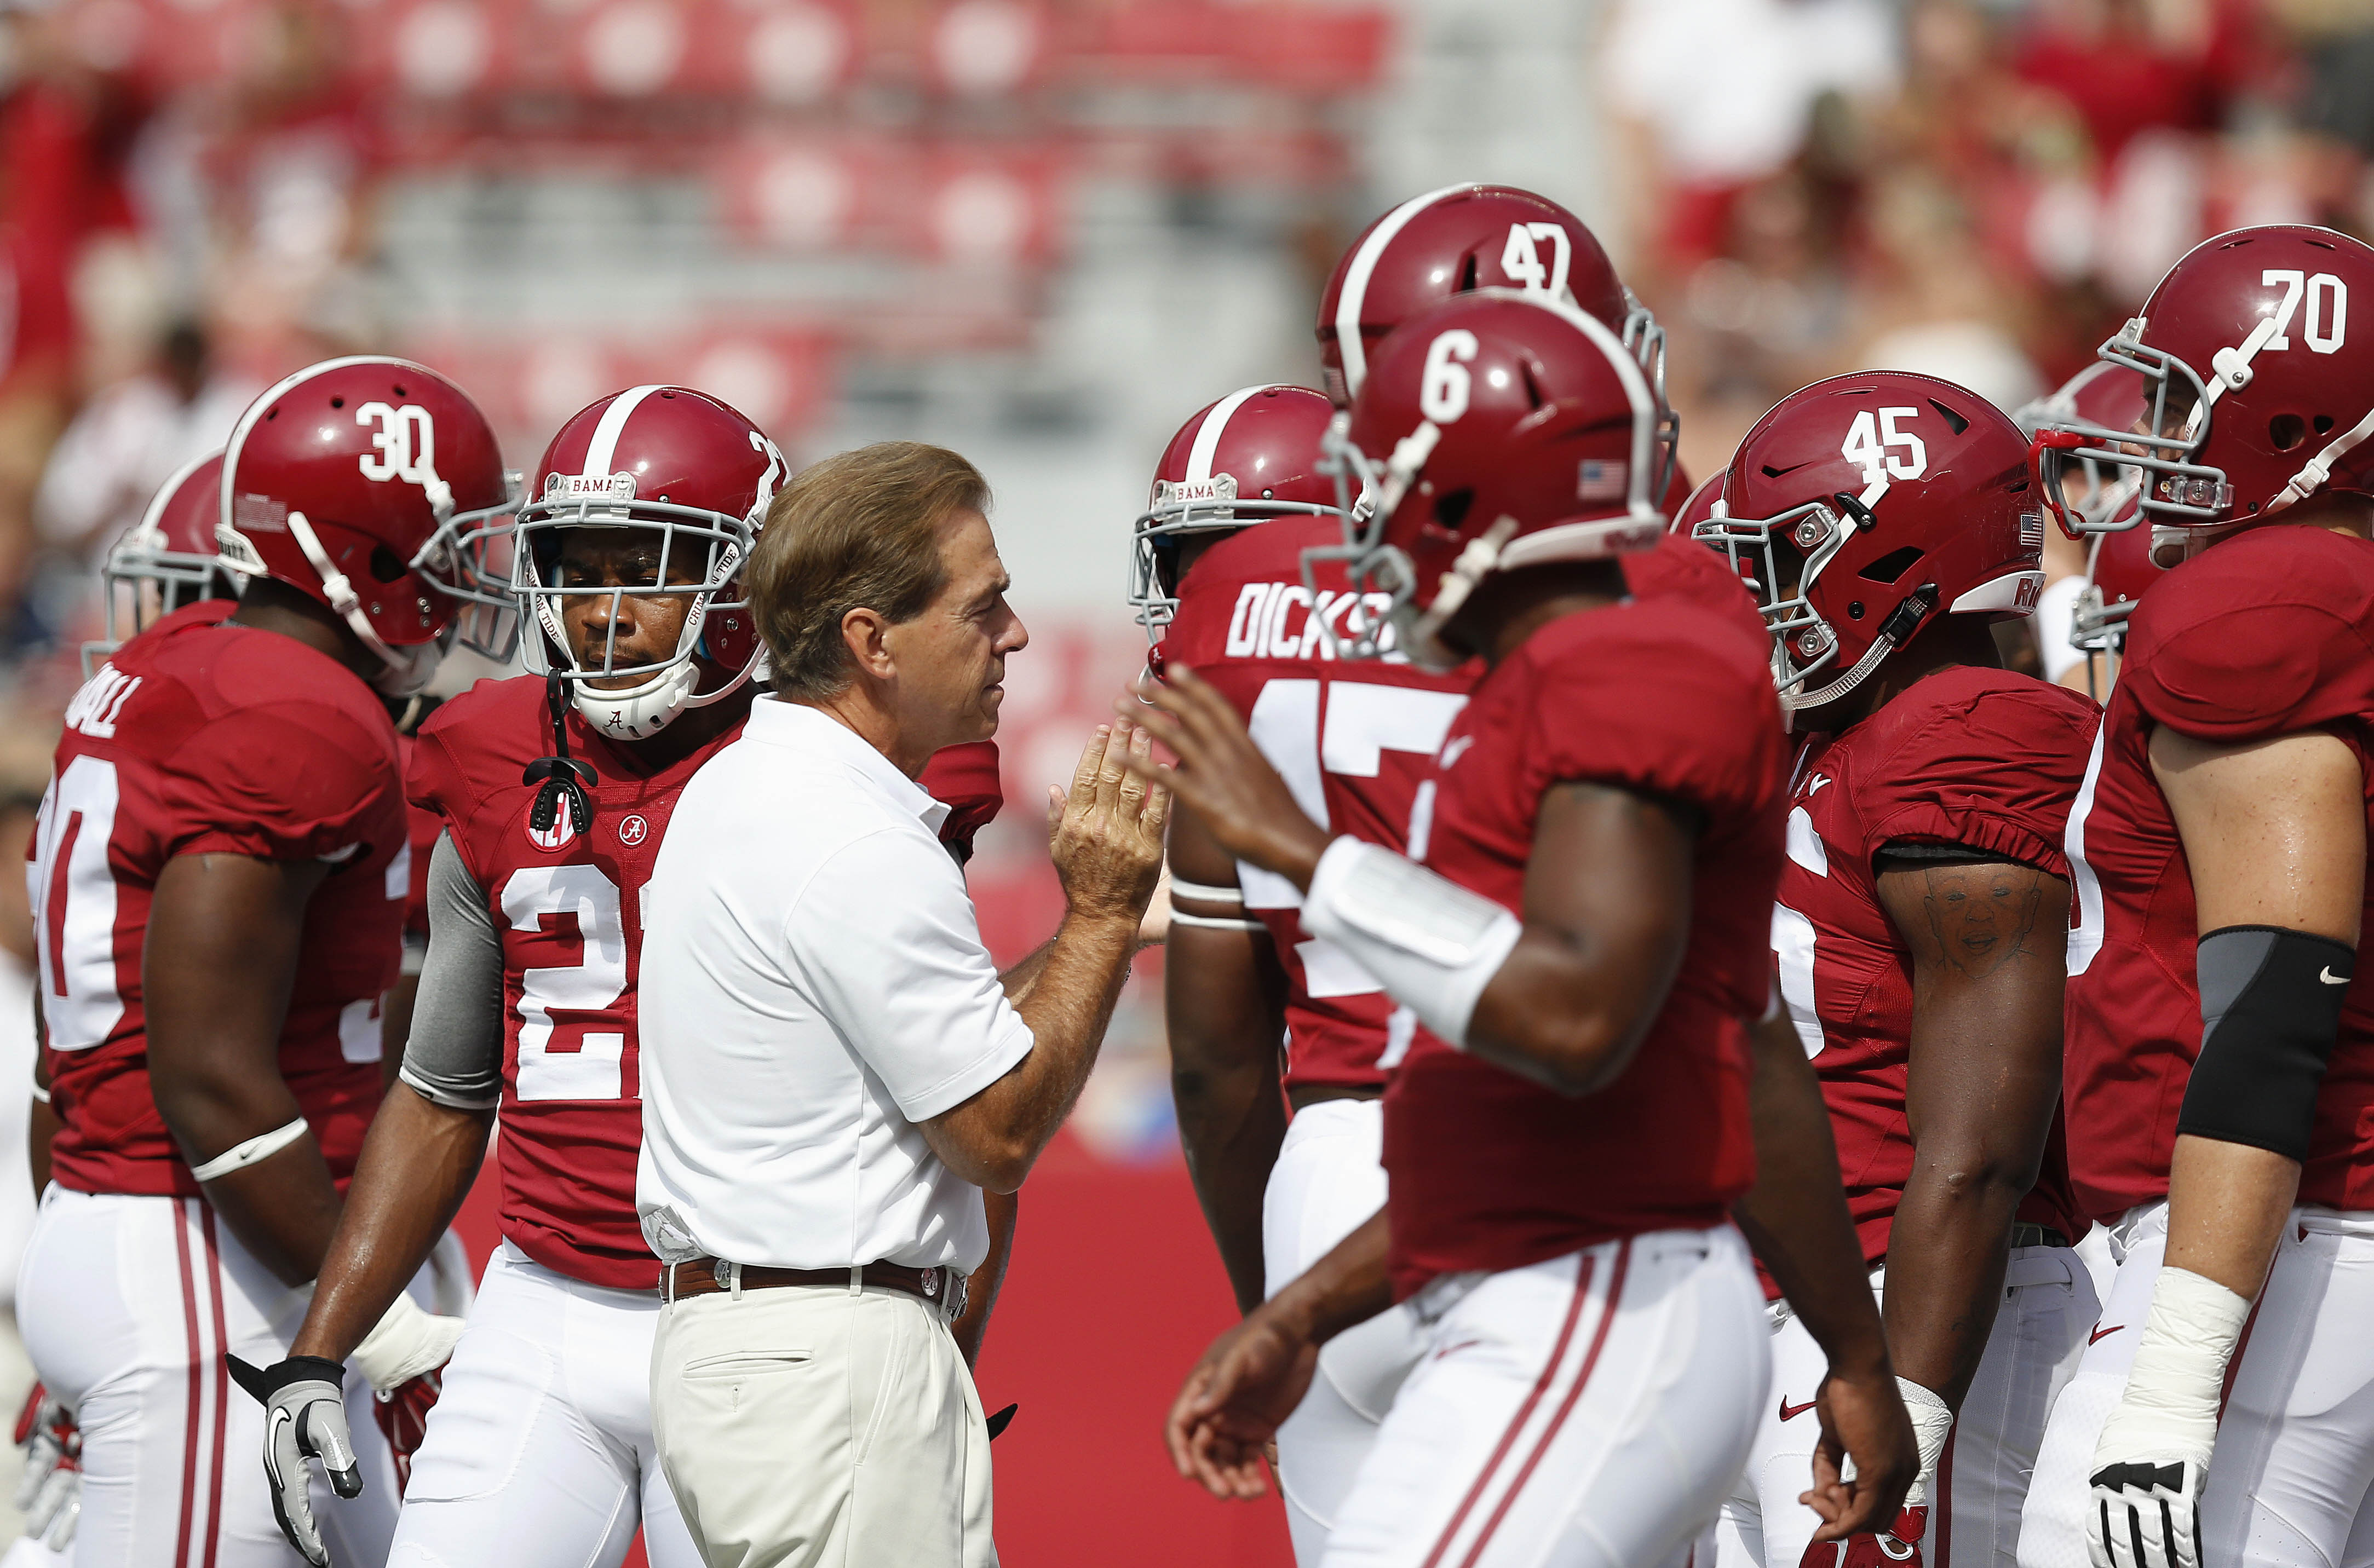 Head coach Nick Saban prepares the team for before the first half of an NCAA college football game against Florida Atlantic Saturday, Sept. 6, 2014, in Tuscaloosa, Ala. (AP Photo/Brynn Anderson)